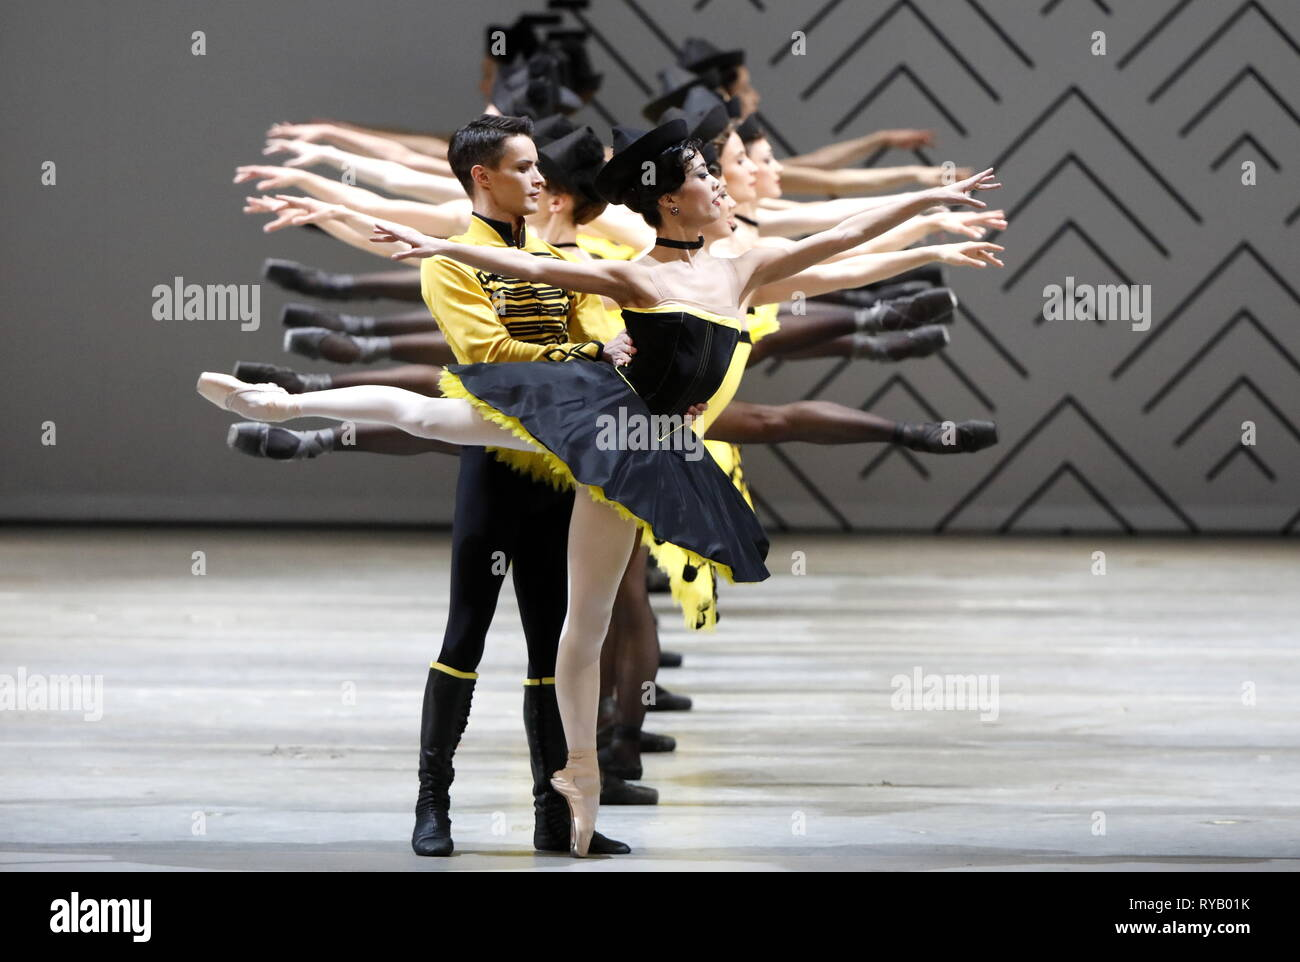 Moscow, Russia. 13th Mar, 2019. MOSCOW, RUSSIA - MARCH 13, 2019: Ballet dancers Miki Nishiguchi (R) as Paquita and Alexey Seliverstov as Lucien d'Hervilly in a scene from the Paquita ballet staged by Viacheslav Samodurov and performed by the Ural Opera Ballet Theatre (Yekaterinburg) as part of the 2019 Golden Mask Festival at the Stanislavski and Nemirovich-Danchenko Moscow Academic Music Theatre. Artyom Geodakyan/TASS Credit: ITAR-TASS News Agency/Alamy Live News - Stock Image